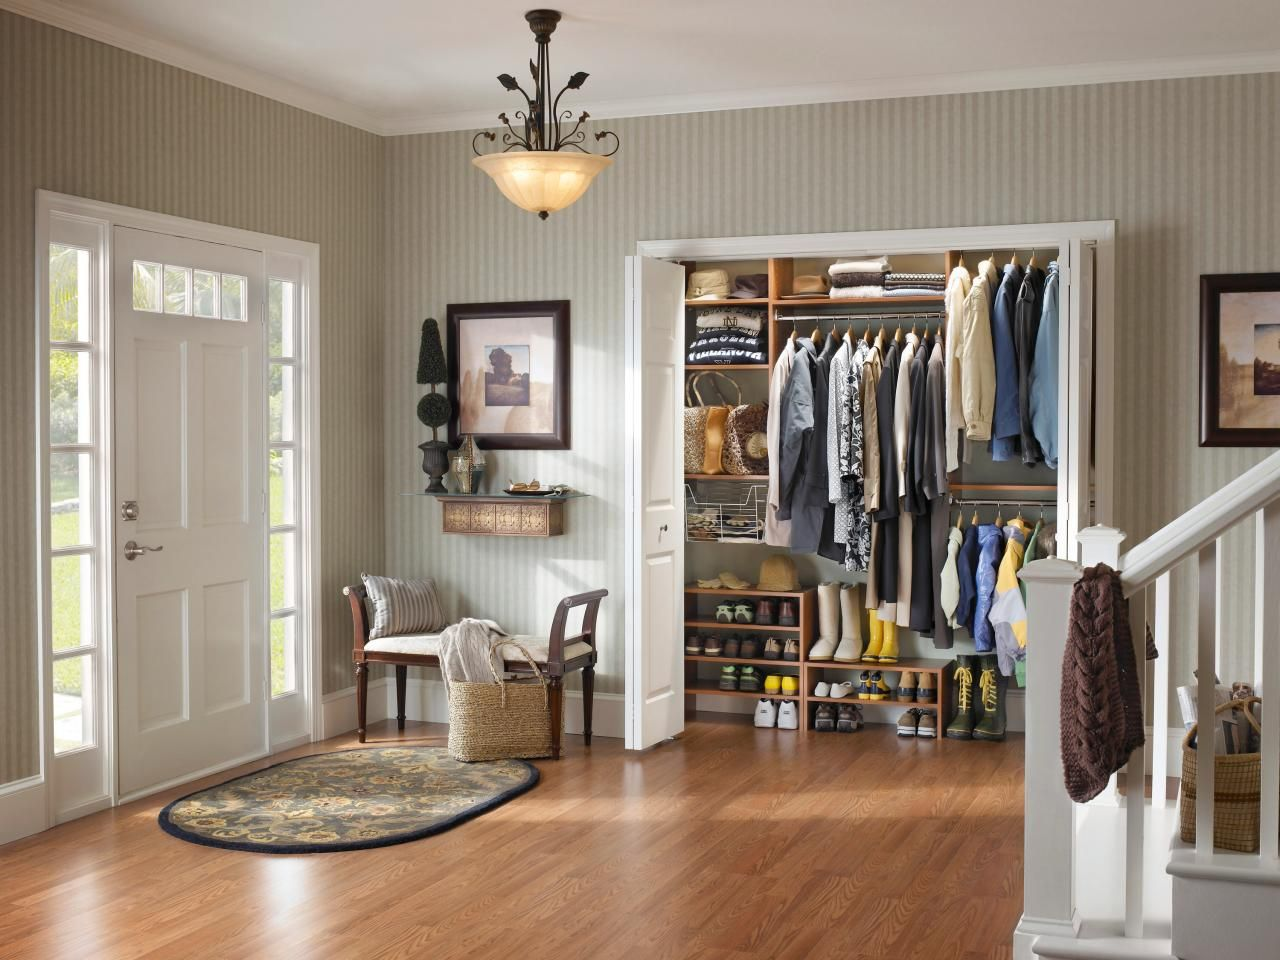 Living Room Closet Design Glamorous 10 Stylish Reachin Closets  Hgtv Foyers And Clutter Inspiration Design